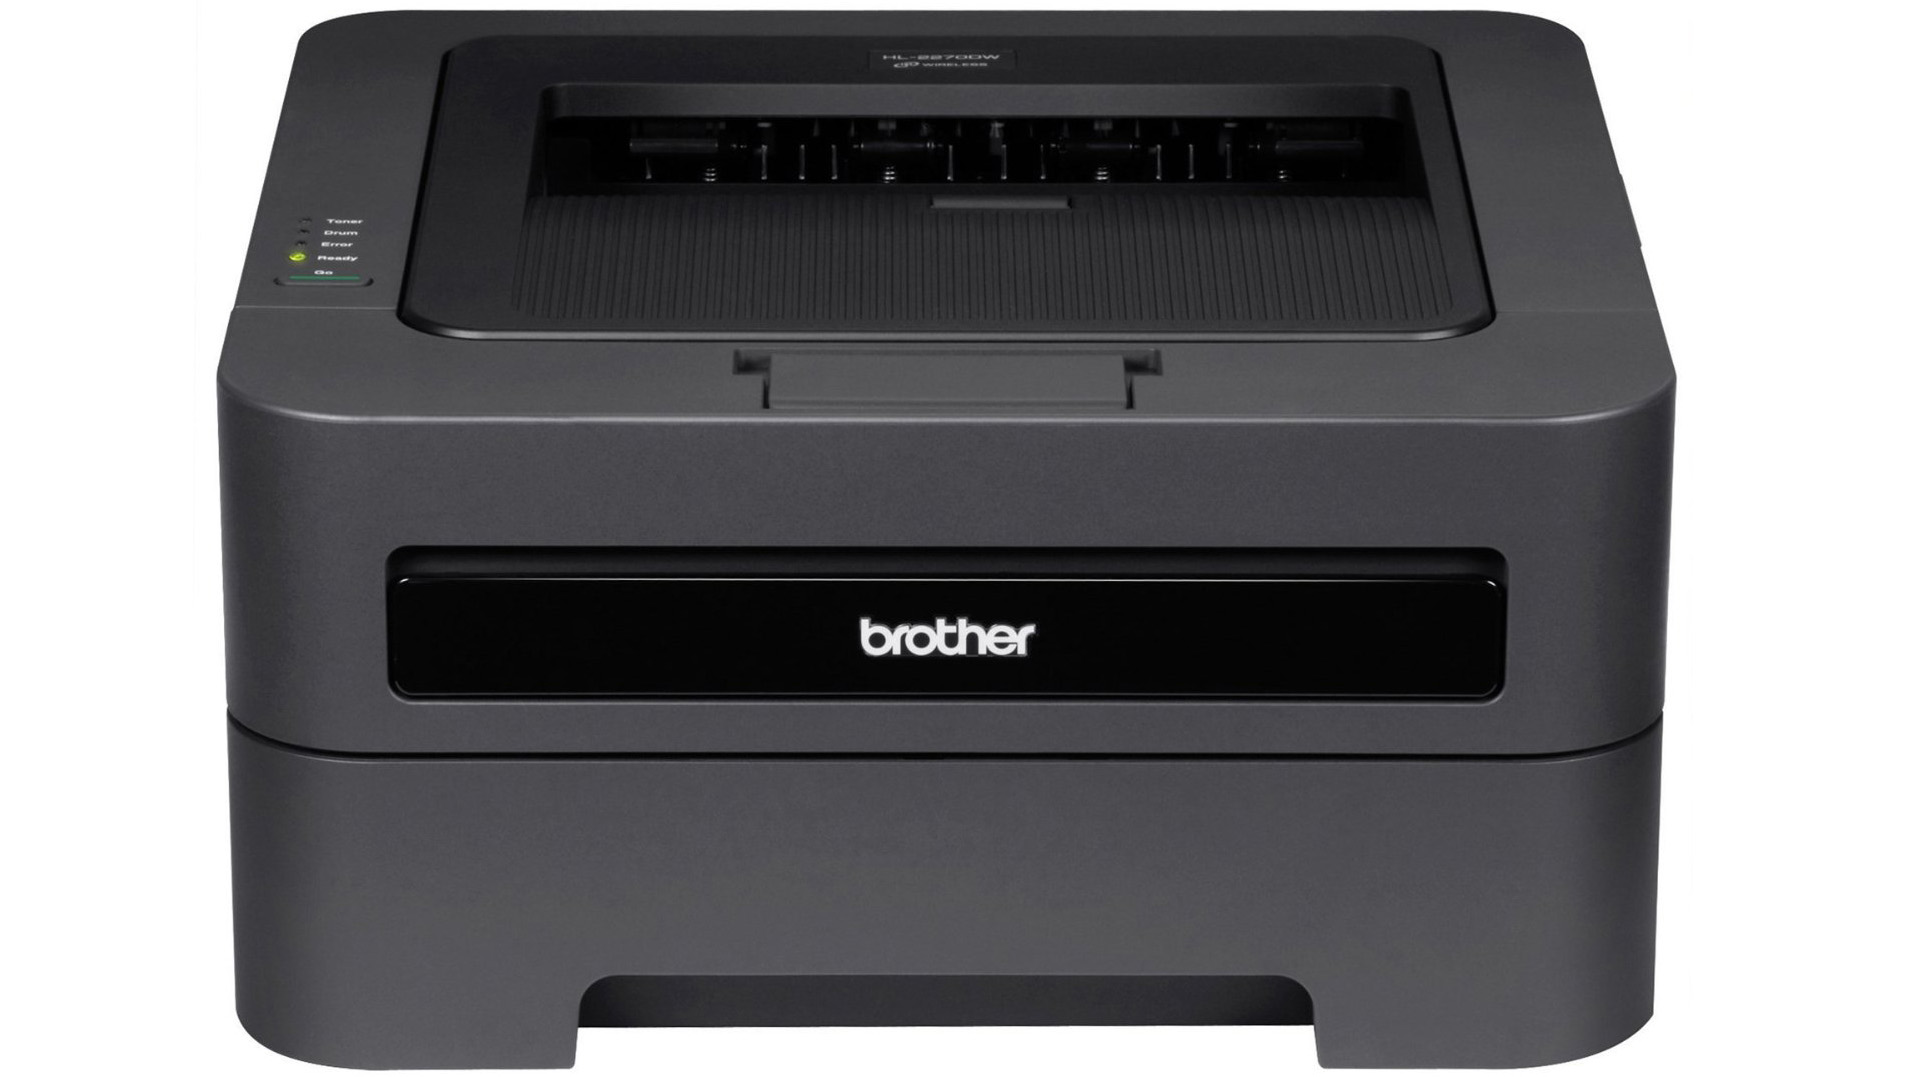 Brother color laser printer cost per page coloring page for Staples color printing cost per page